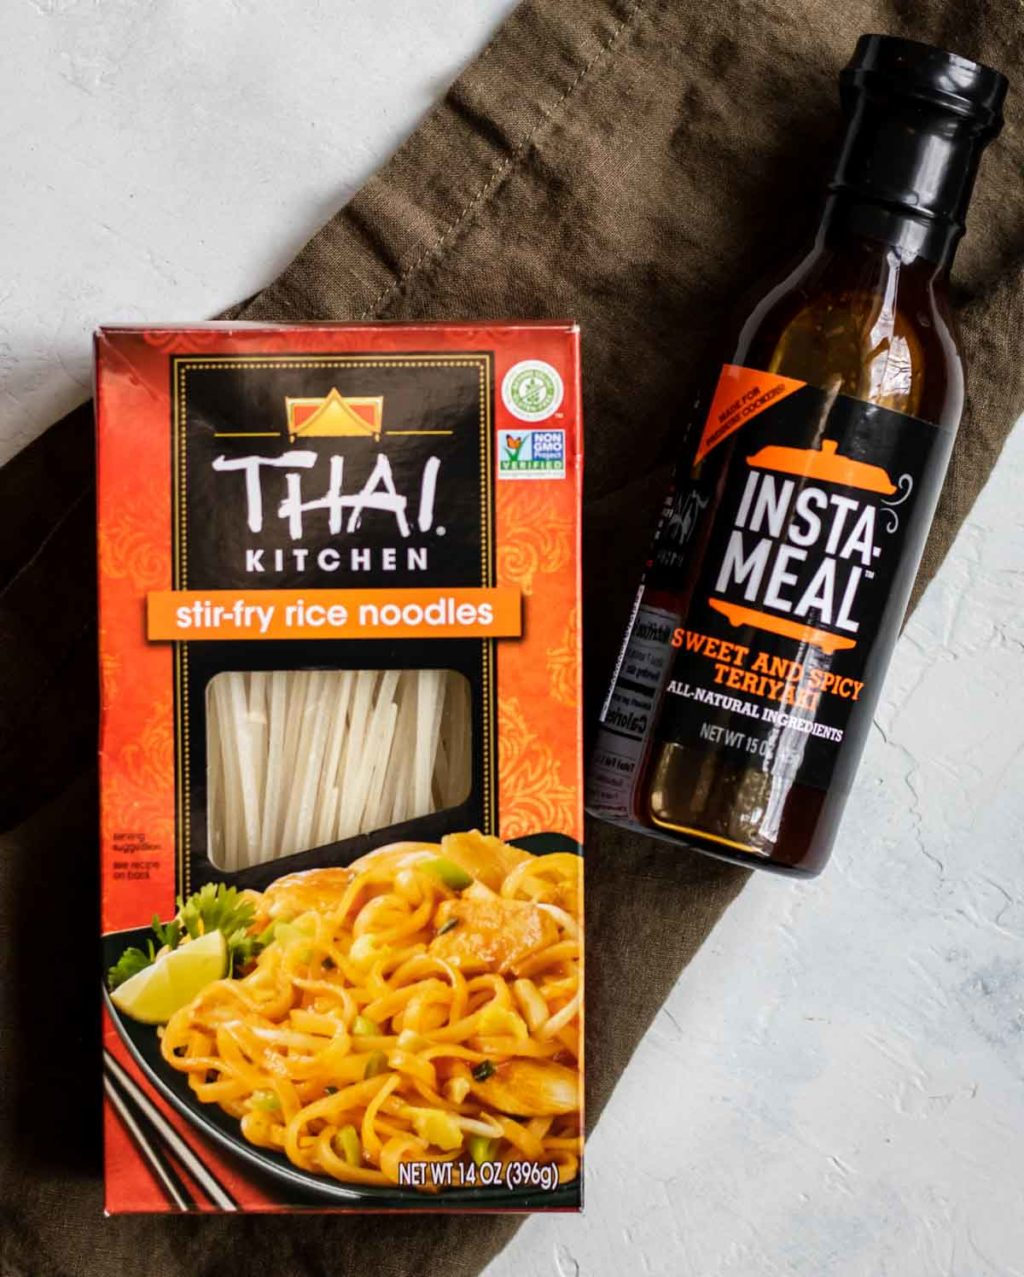 Thai Kitchen Rice Noodles and Instant Pot Insta-Meal sauce